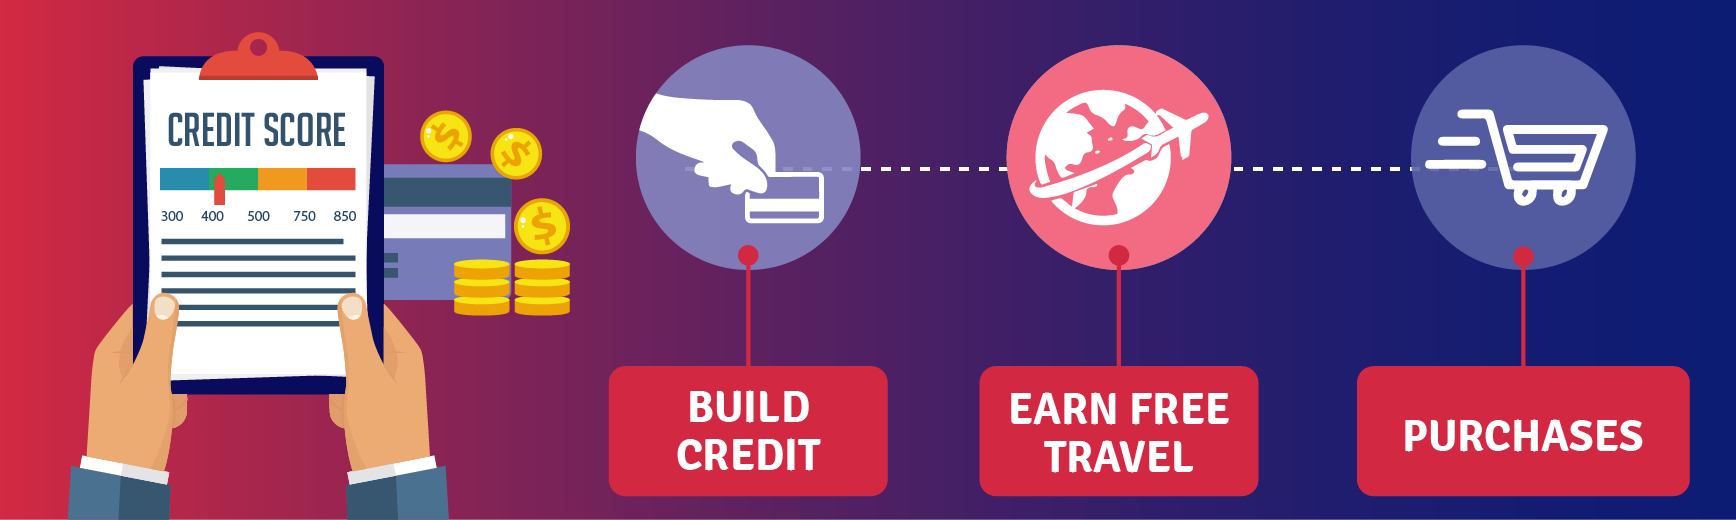 Build credit, score perks, and more with U.S. Bank credit cards